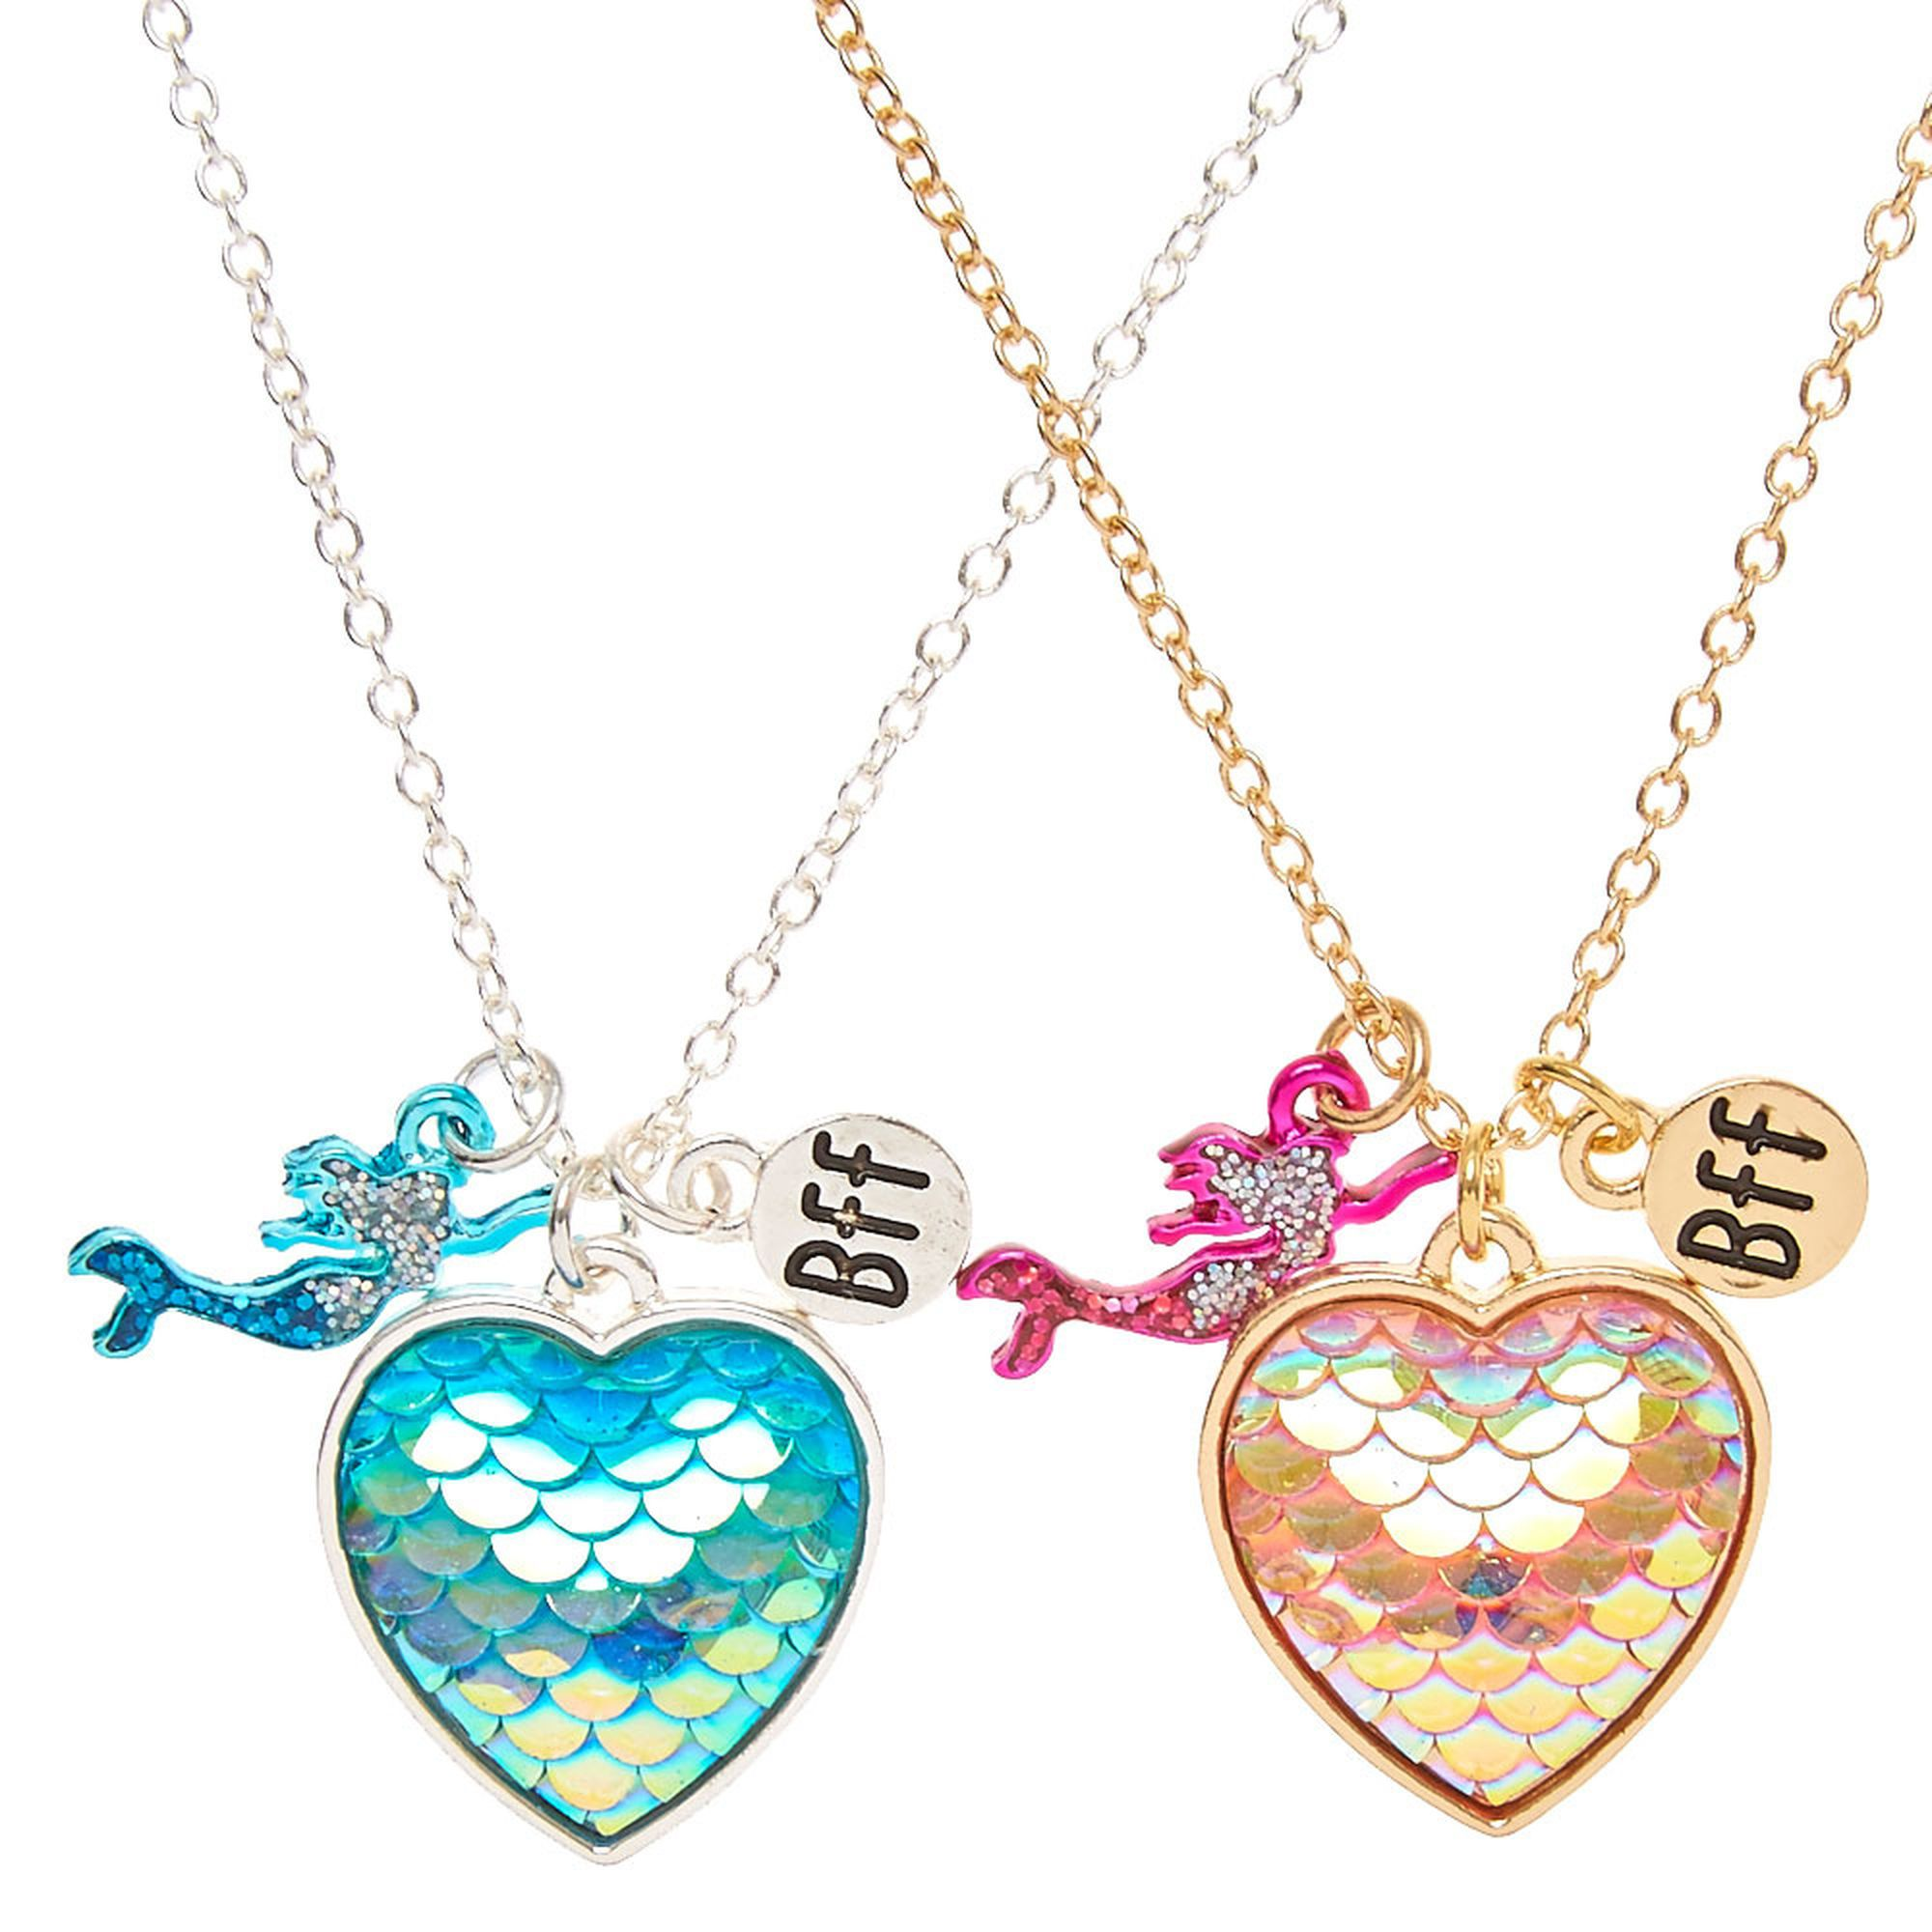 pastel claire pendant us necklaces lockets s best heart friendship friends locket glitter